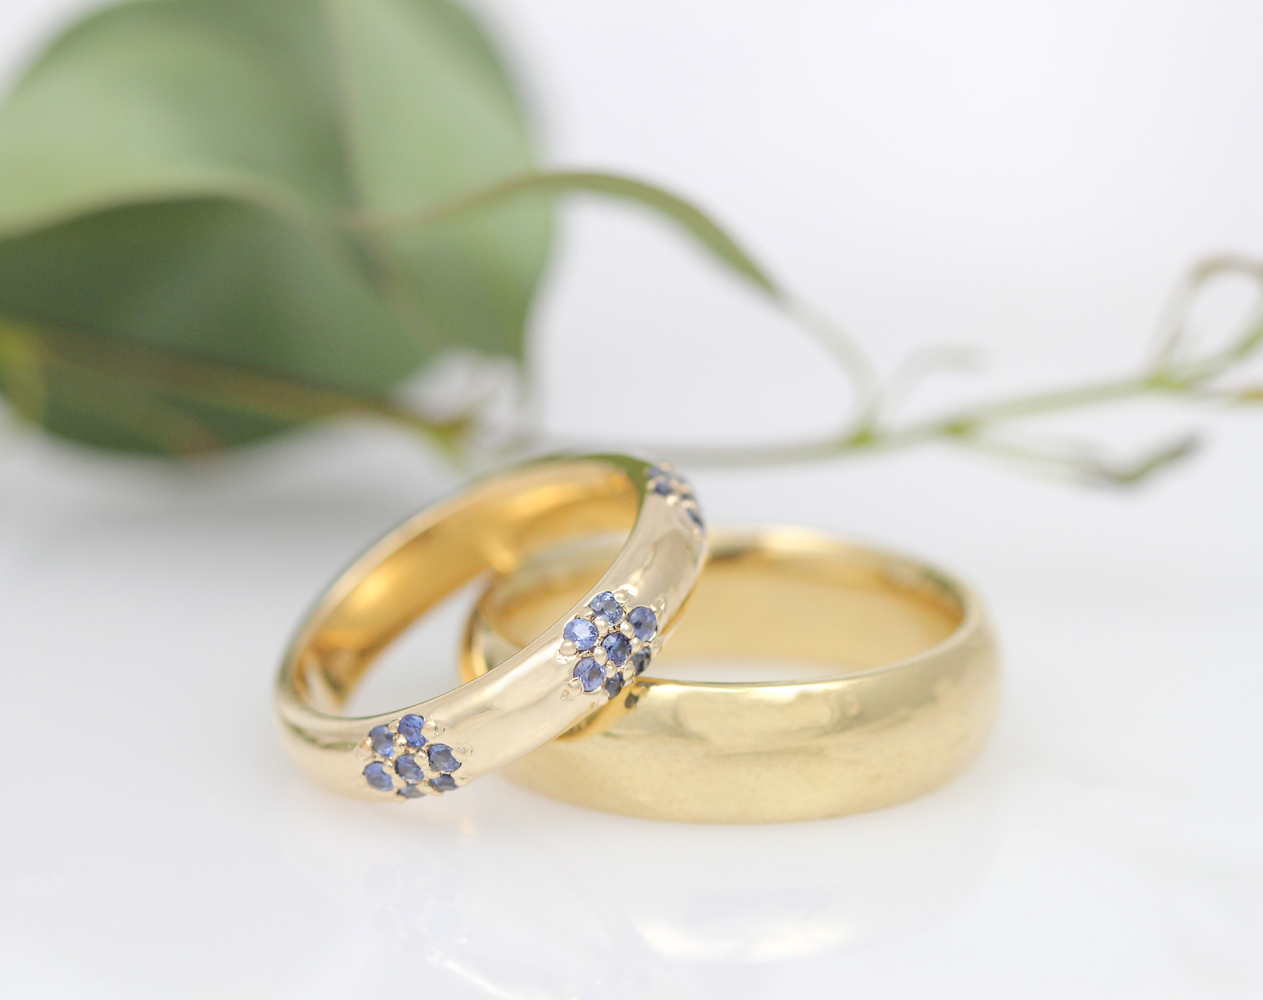 A discerning bride selected each dainty sapphire by hand to create the perfect one of a kind wedding band.